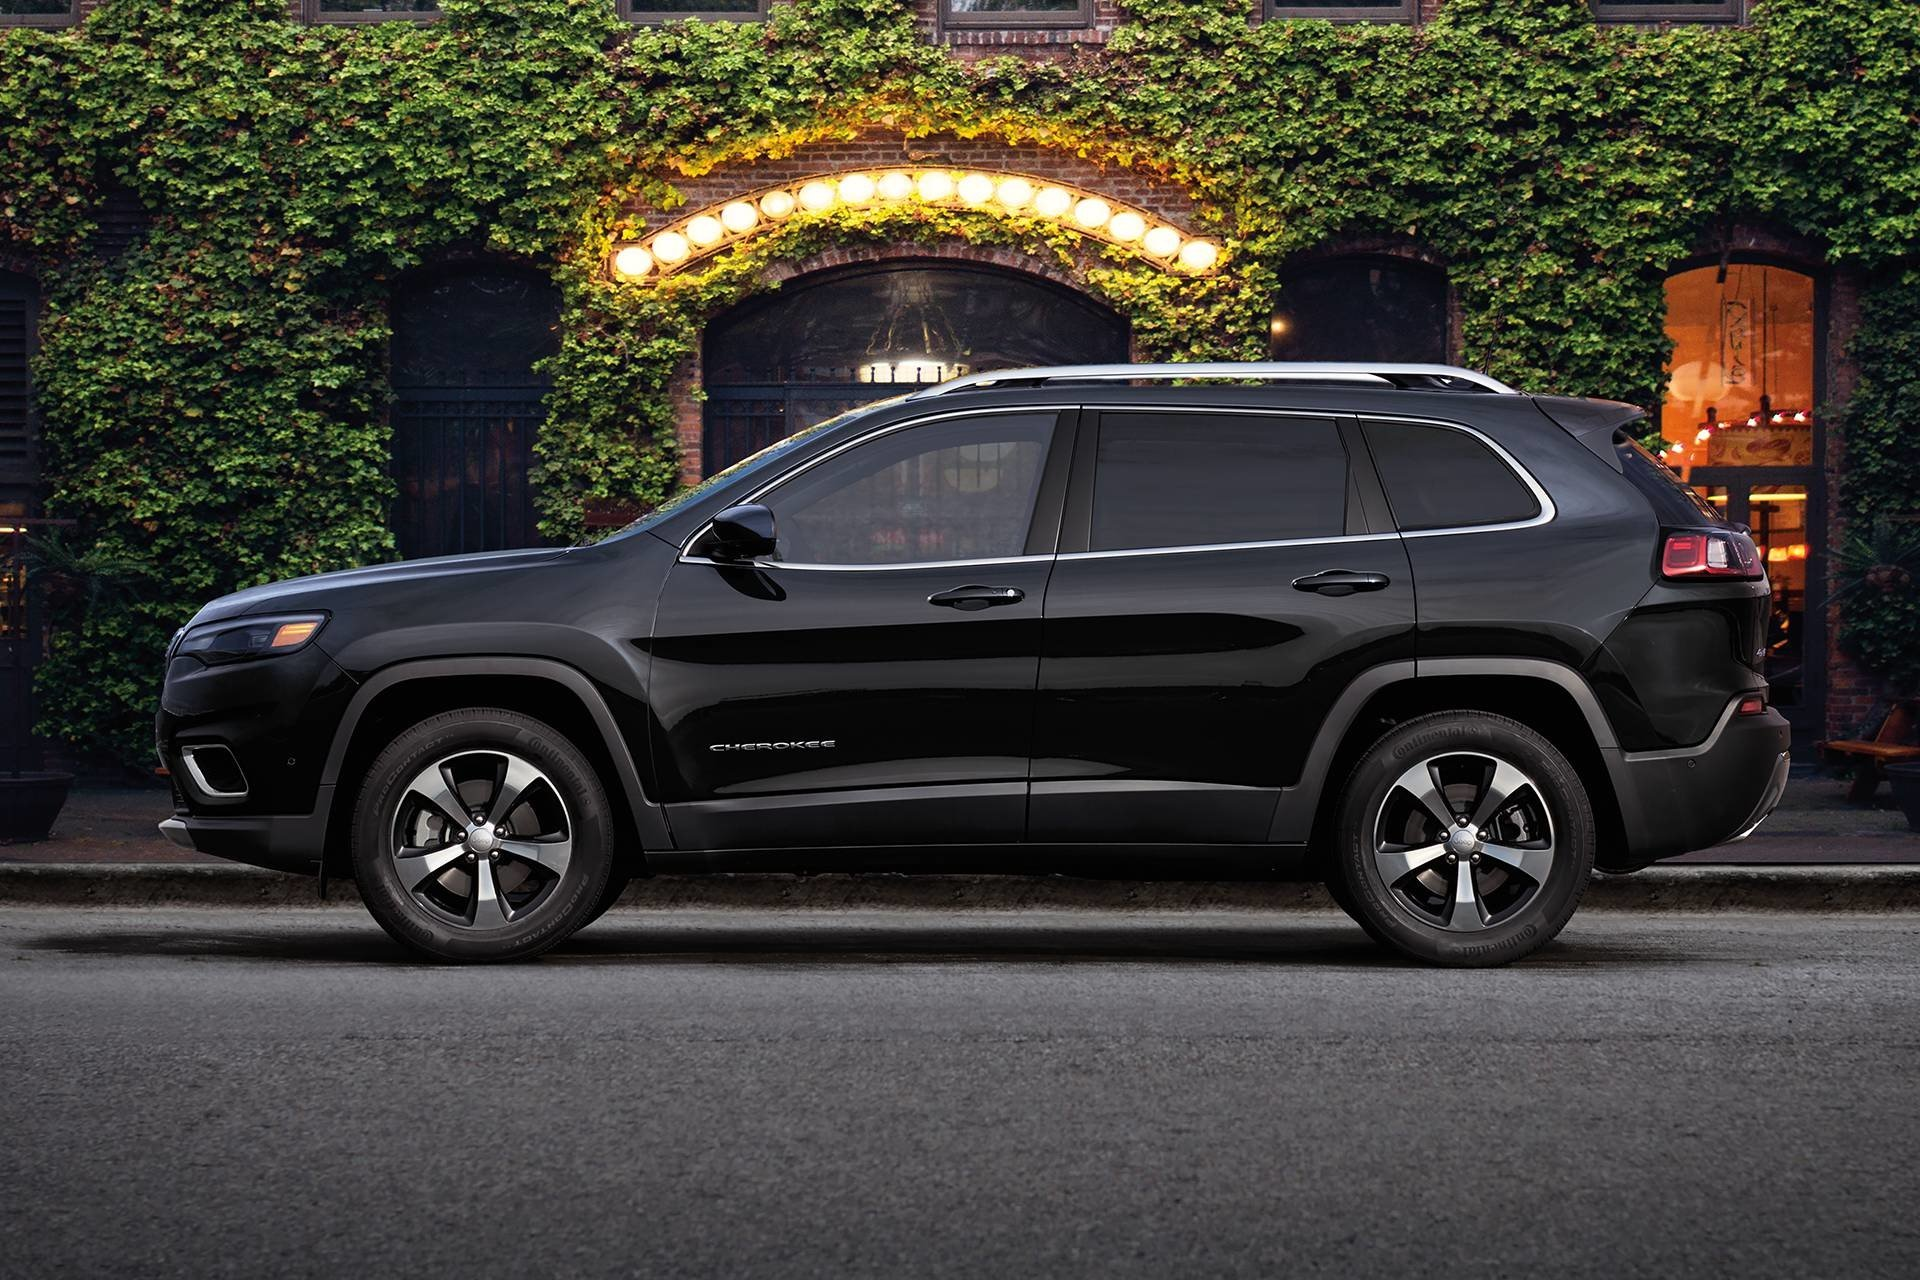 New 2019 Jeep Grand Cherokee Overland Overland for sale $48,995 at M and V Leasing in Brooklyn NY 11223 1